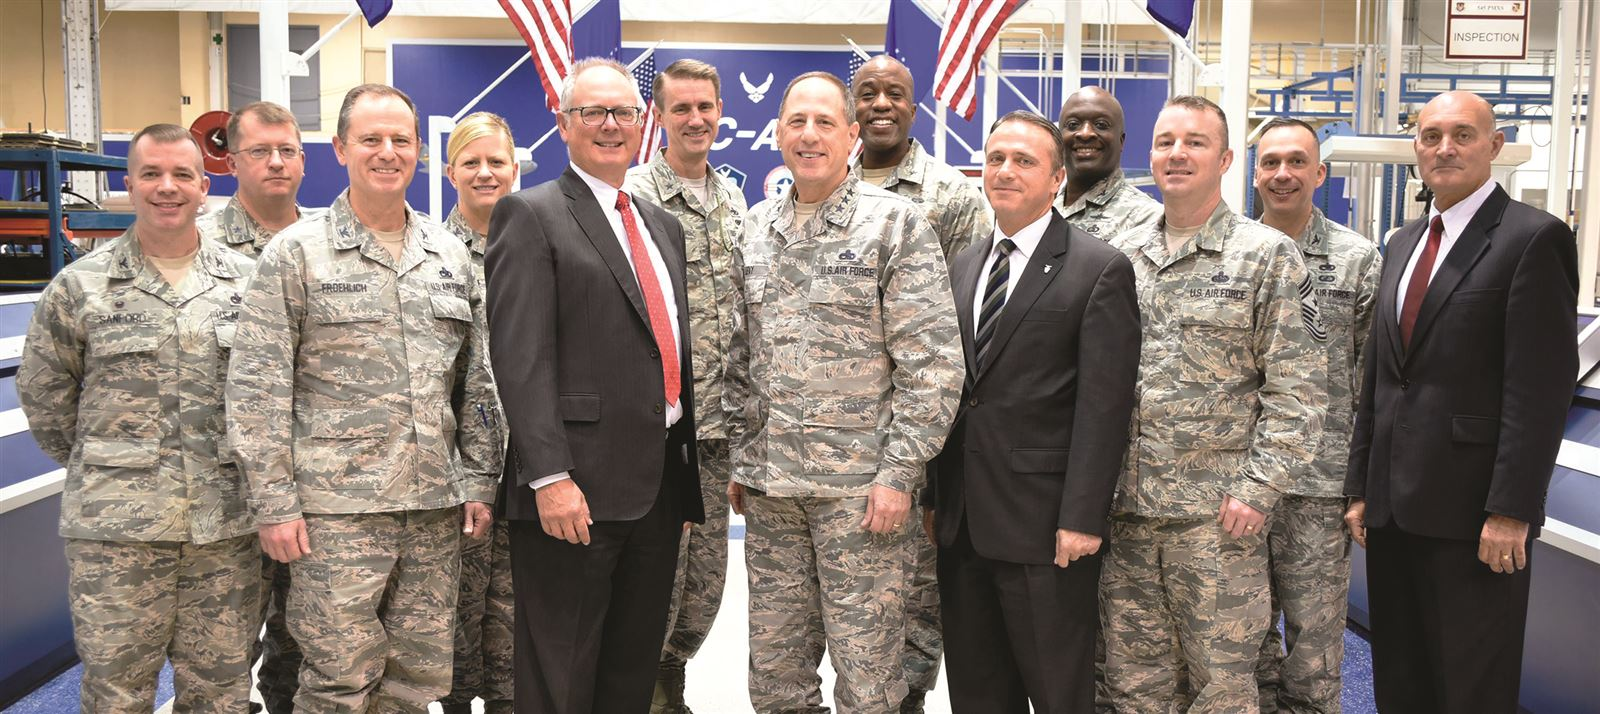 2018 AFSC Commander's Summit held at Tinker AFB